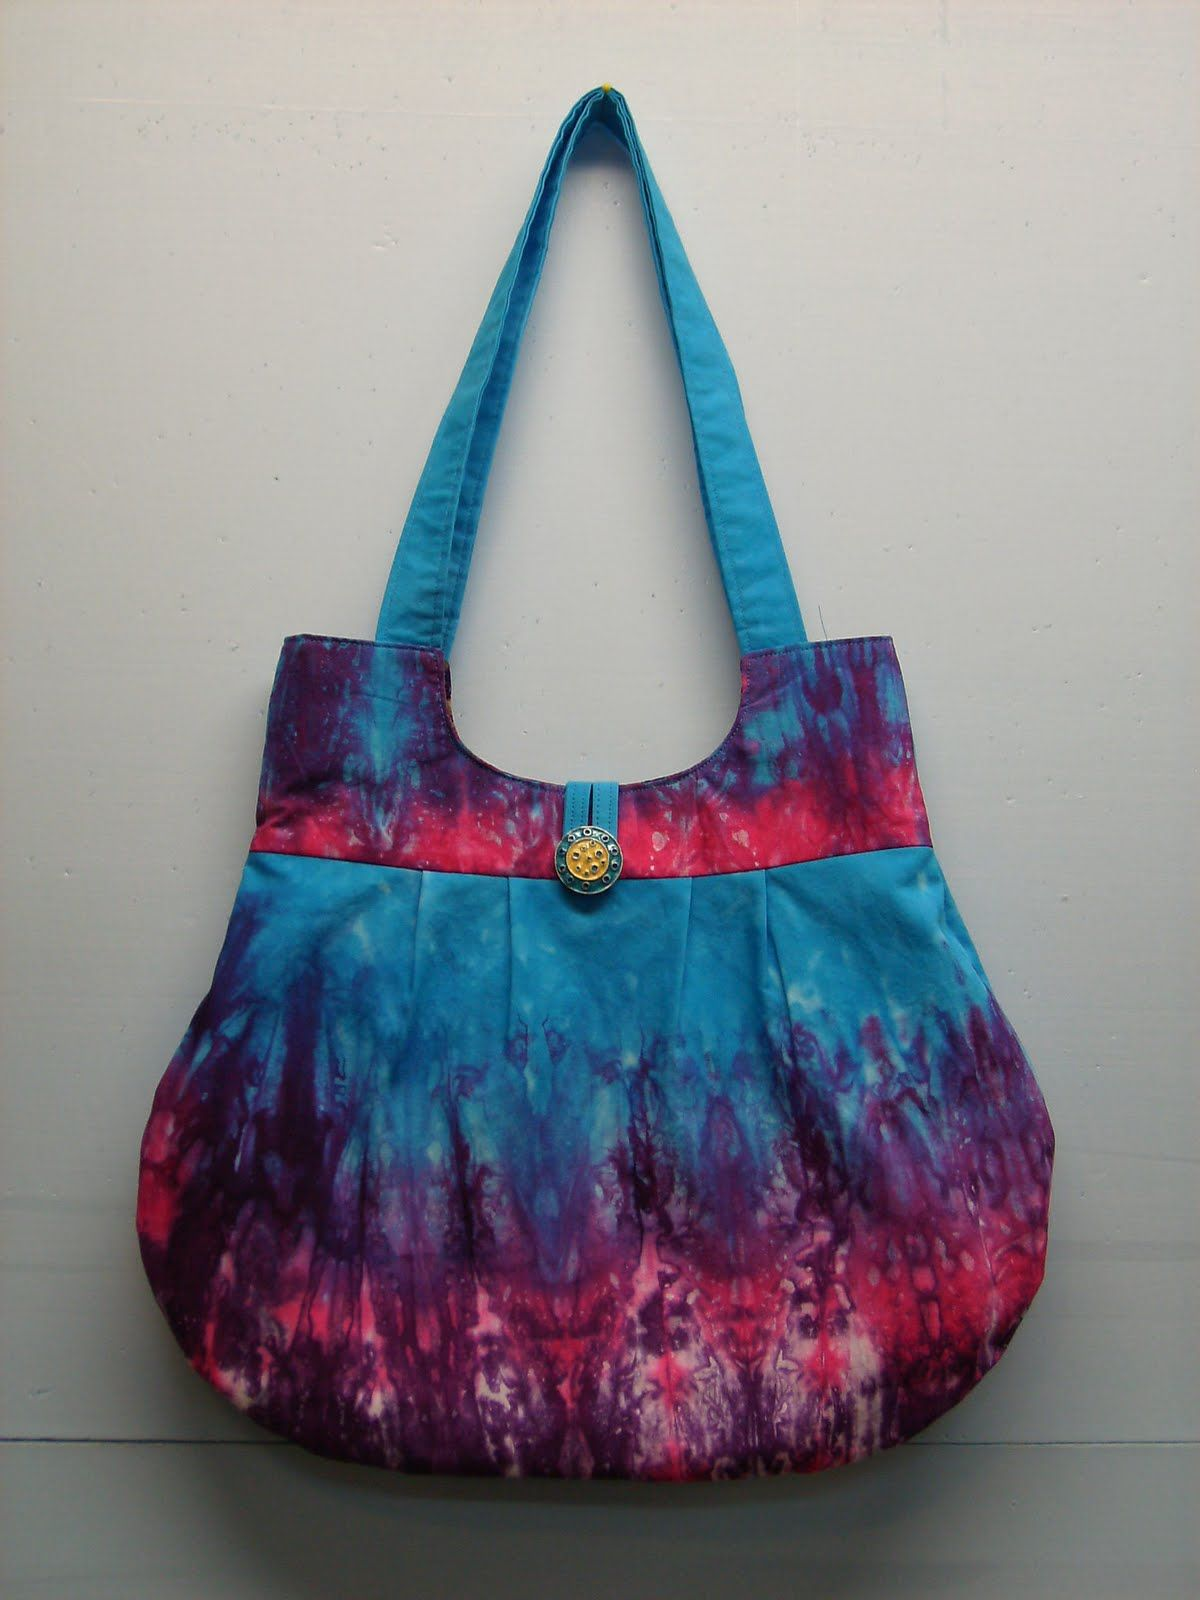 Free Fabric Handbag Patterns Of The Hand Dyed I Recently Made To Make A New Purse This